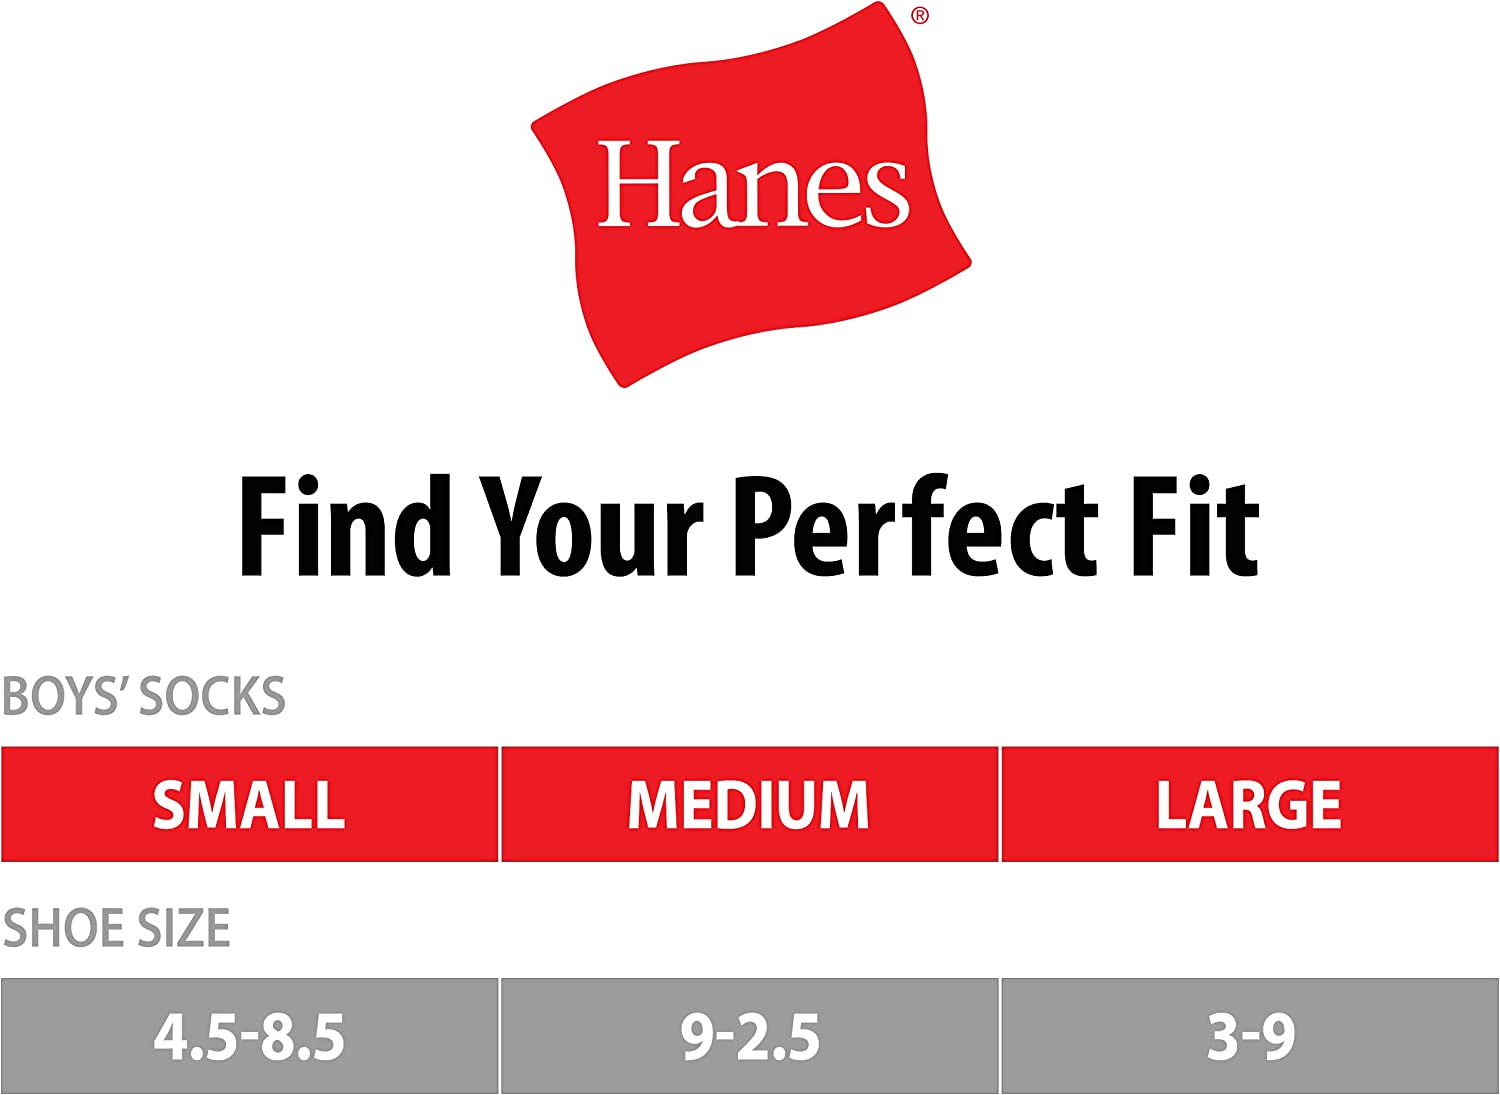 Hanes Boys' 10-Pack Toddler Assorted Colors EZ Sort Matching with Reinforced Heel and Toe Low Cut Socks